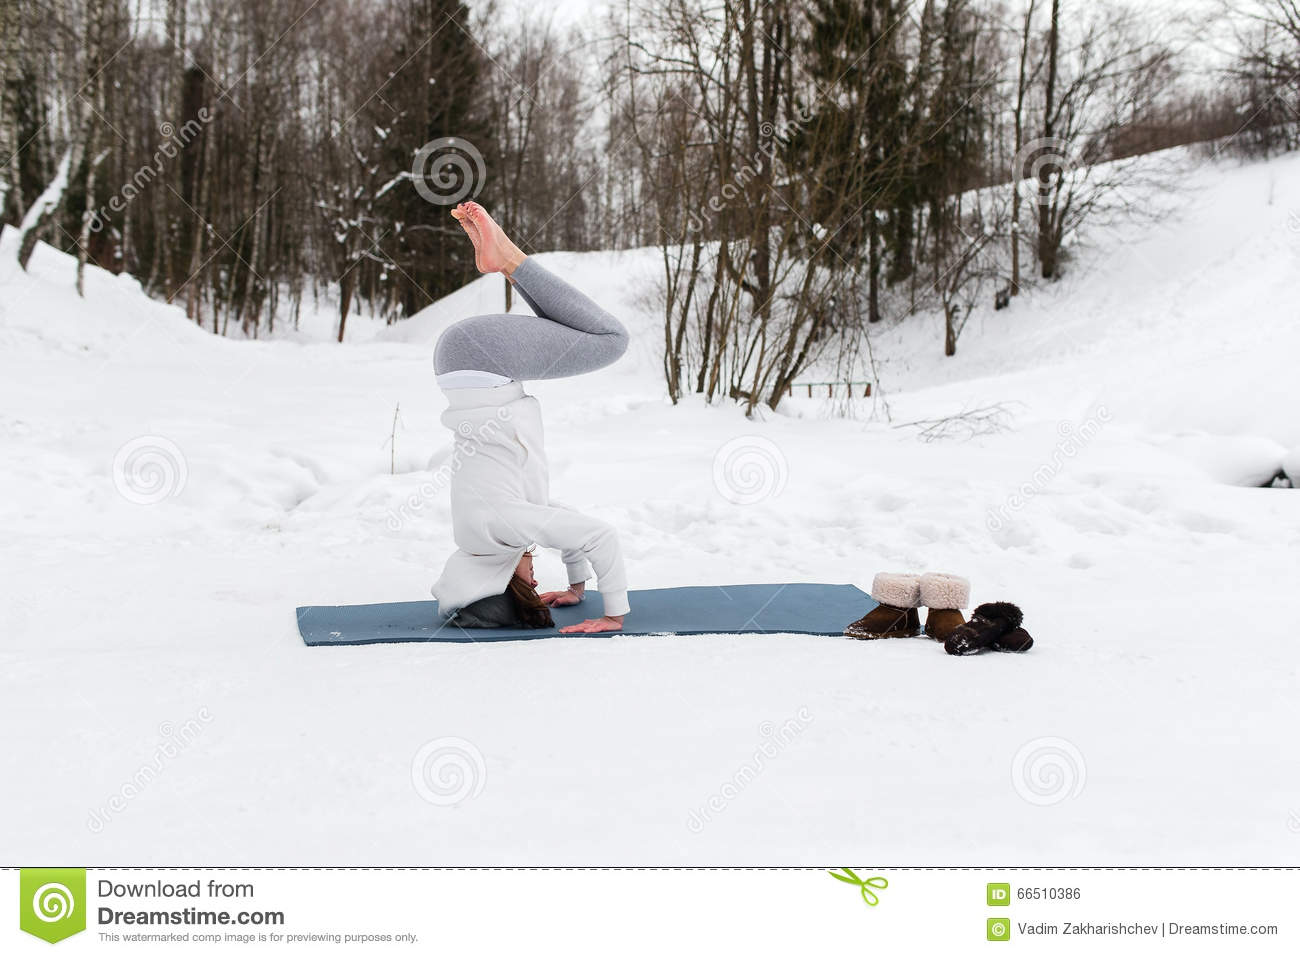 https://thumbs.dreamstime.com/z/winter-yoga-session-beautiful-place-young-athletic-woman-doing-woods-girl-engaged-fitness-park-66510386.jpg